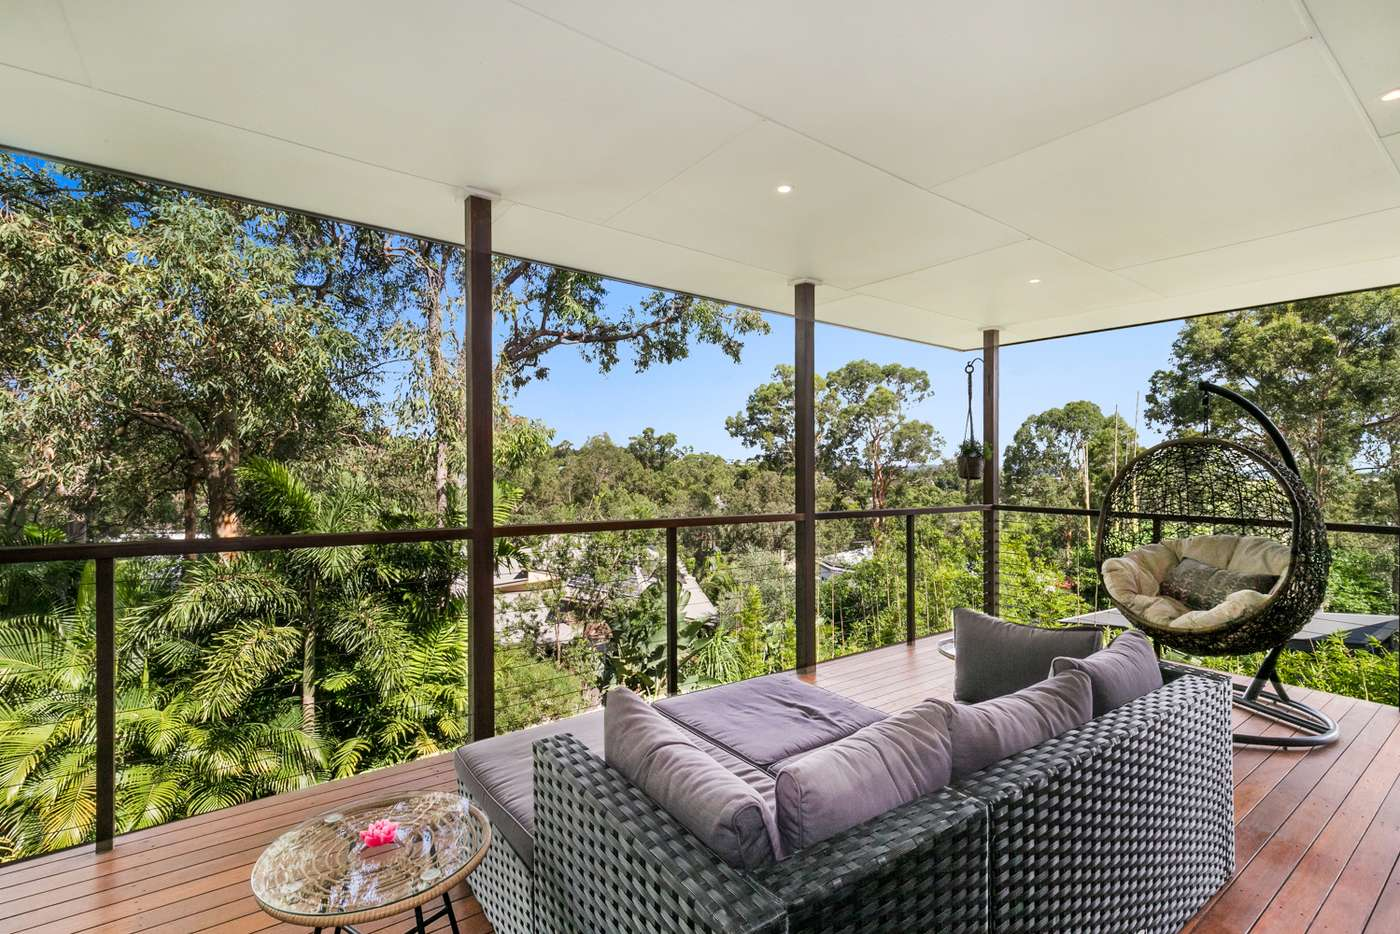 Fifth view of Homely house listing, 66 Gordon Circuit, Seventeen Mile Rocks QLD 4073